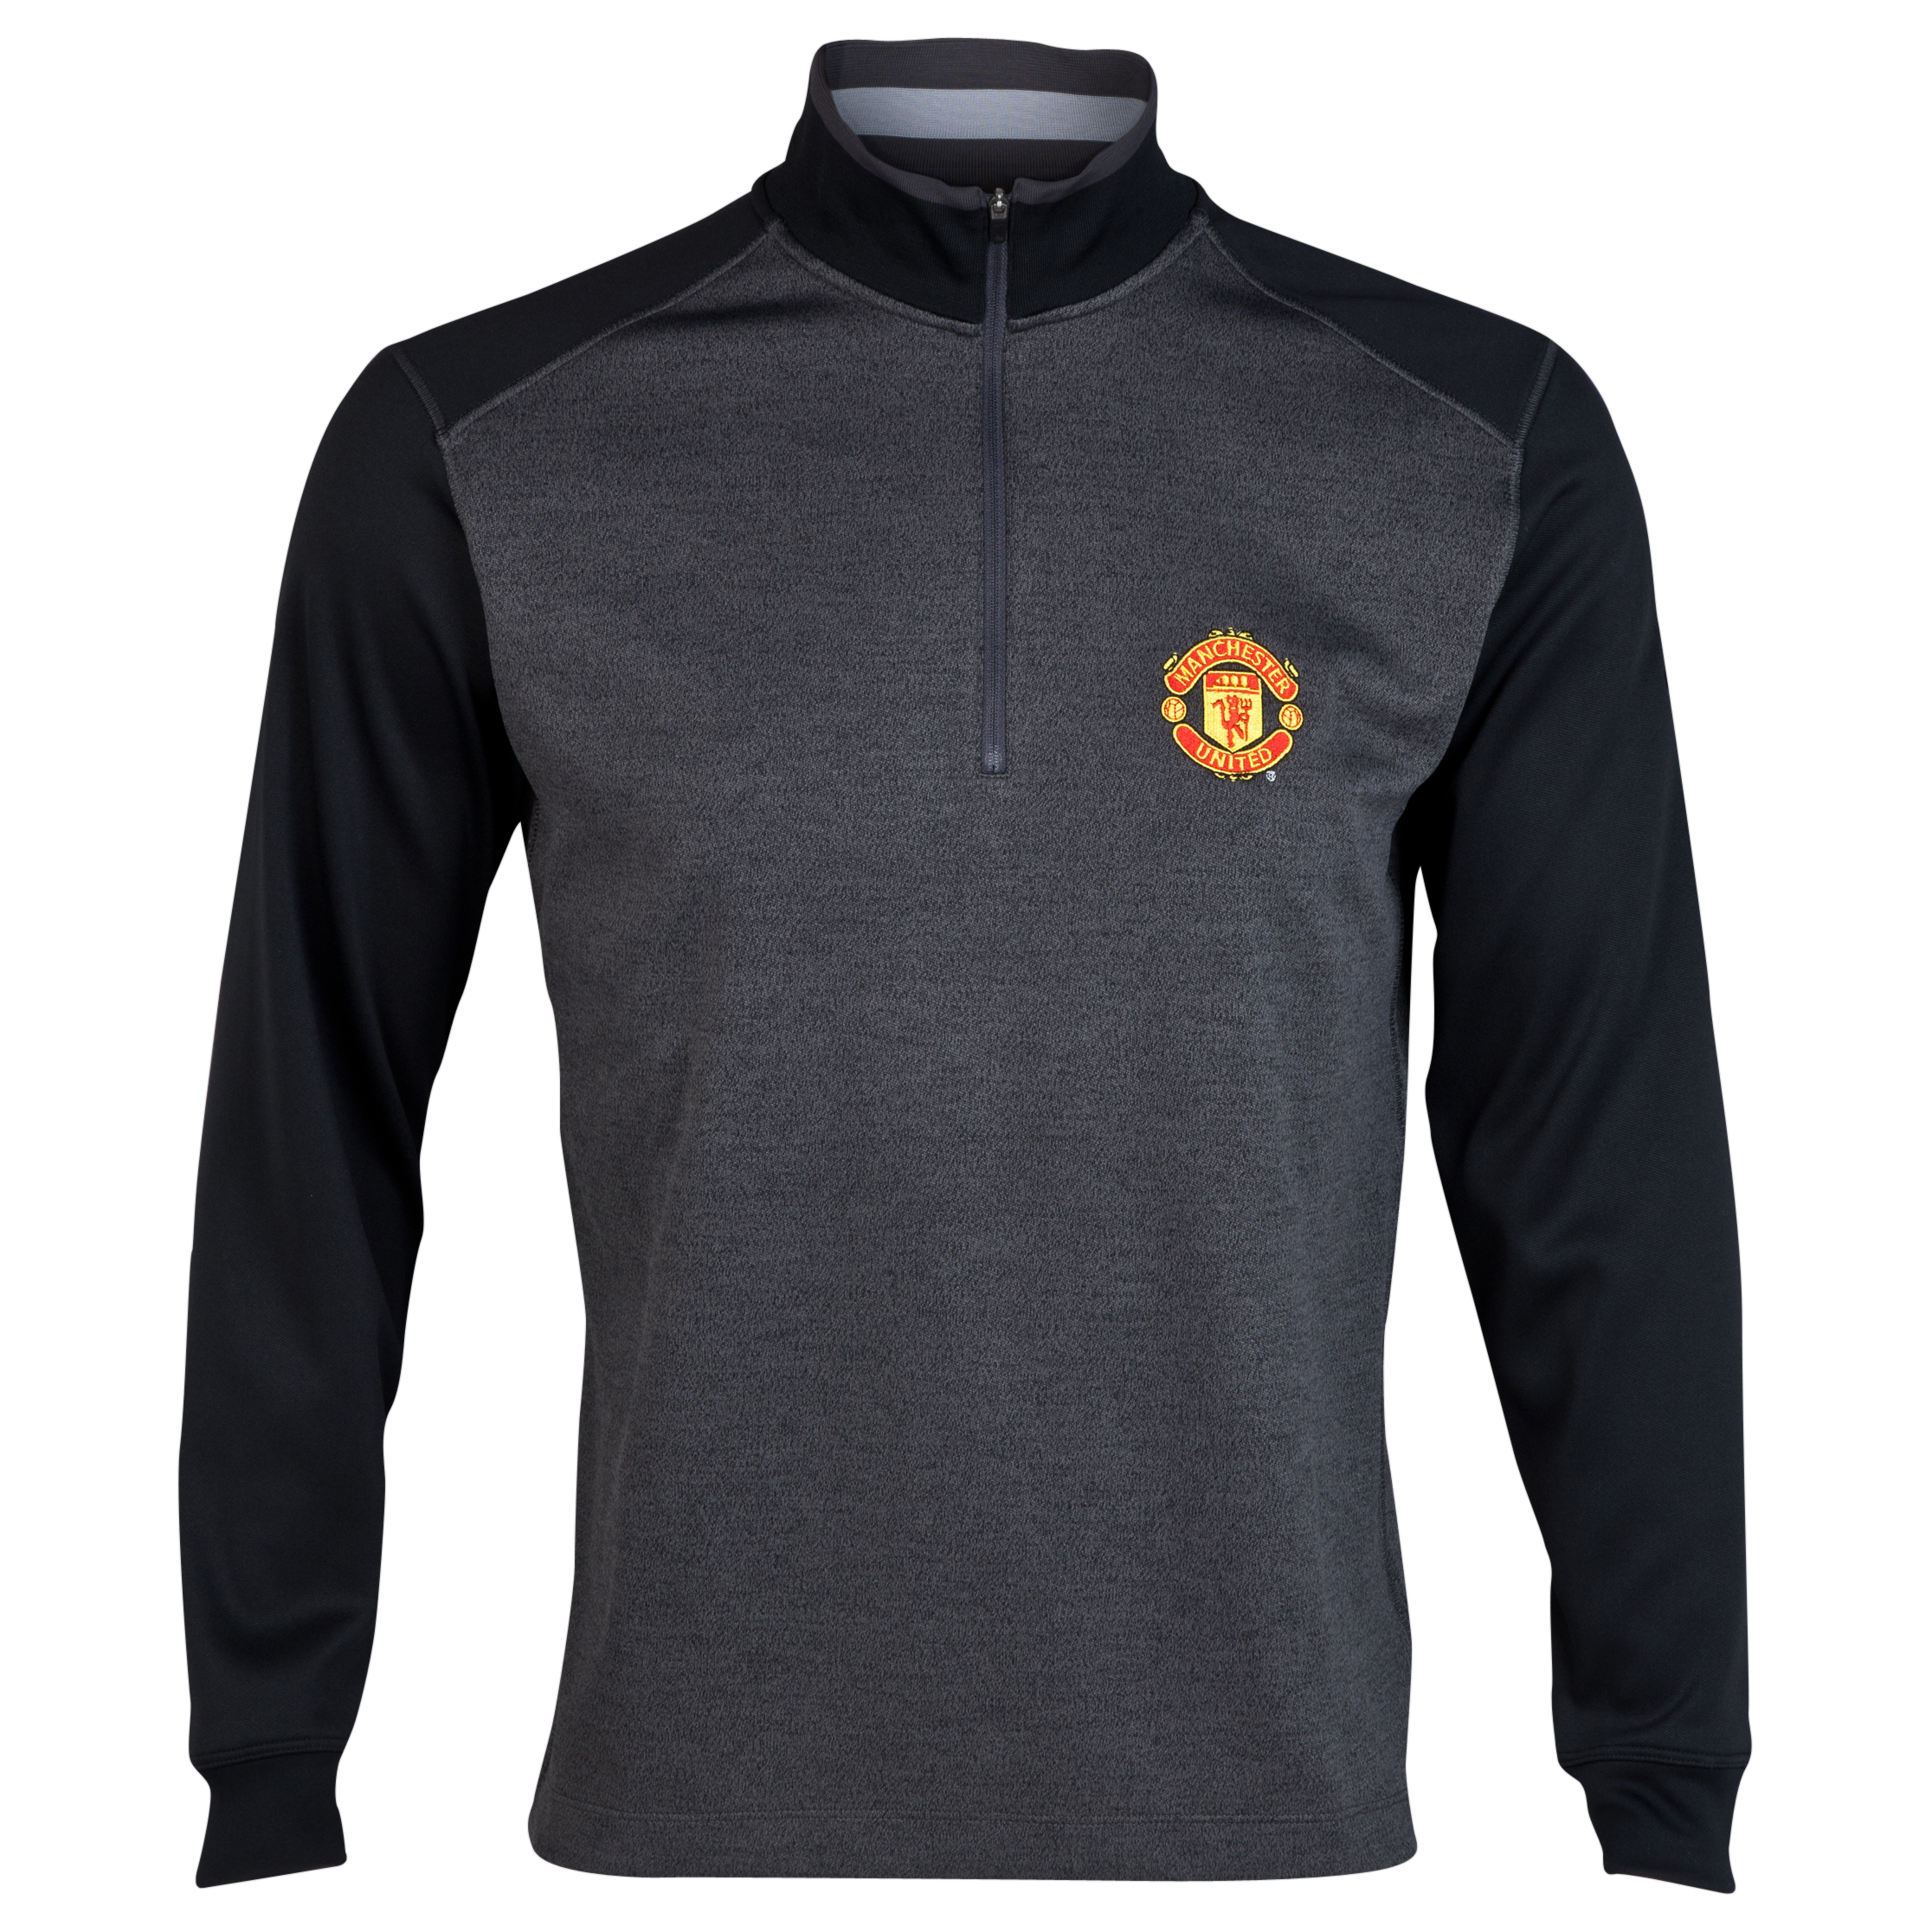 Manchester United Nike Golf 1/2 Zip Sweatshirt Black